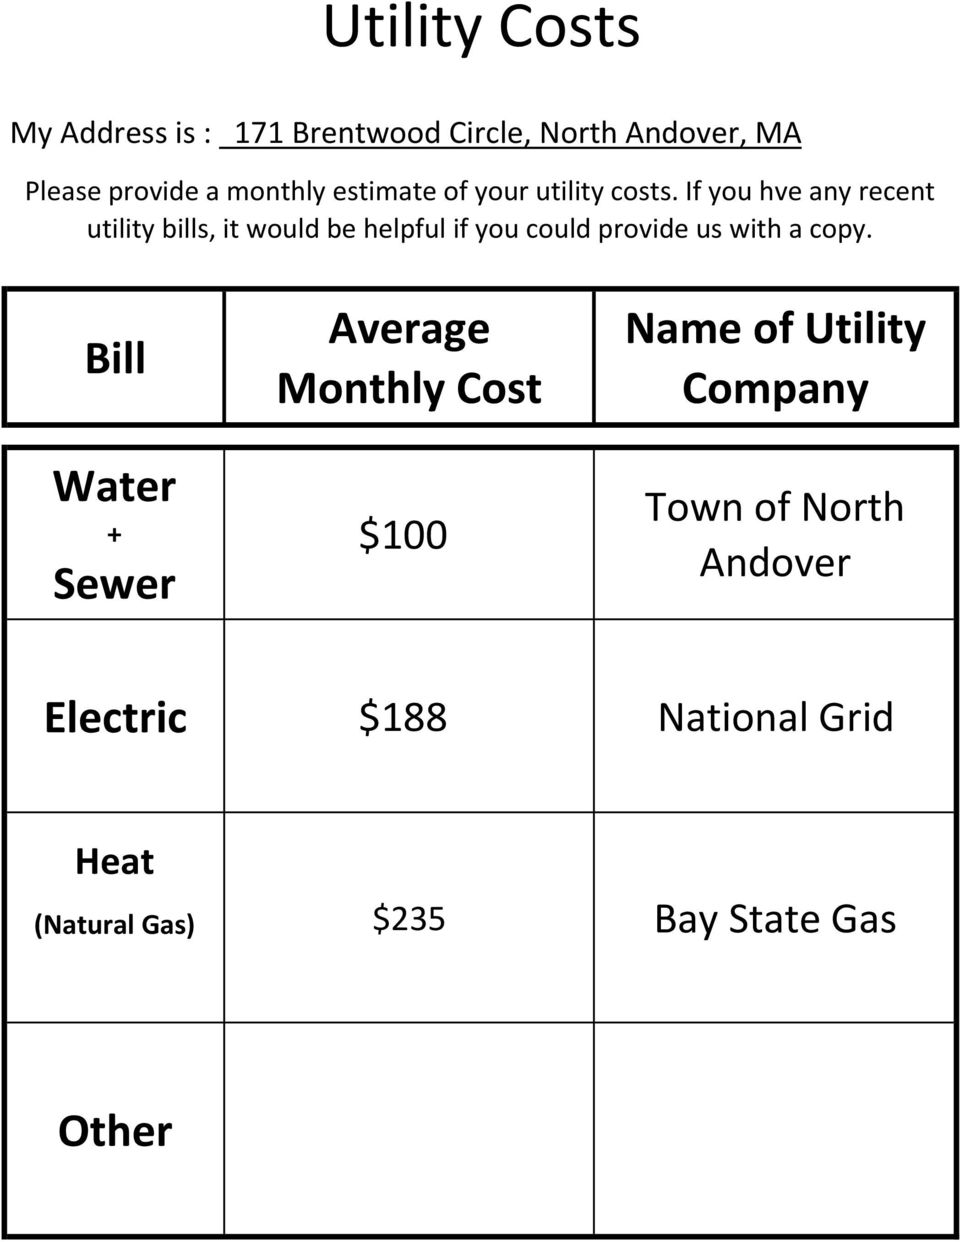 If you hve any recent utility bills, it would be helpful if you could provide us with a copy.